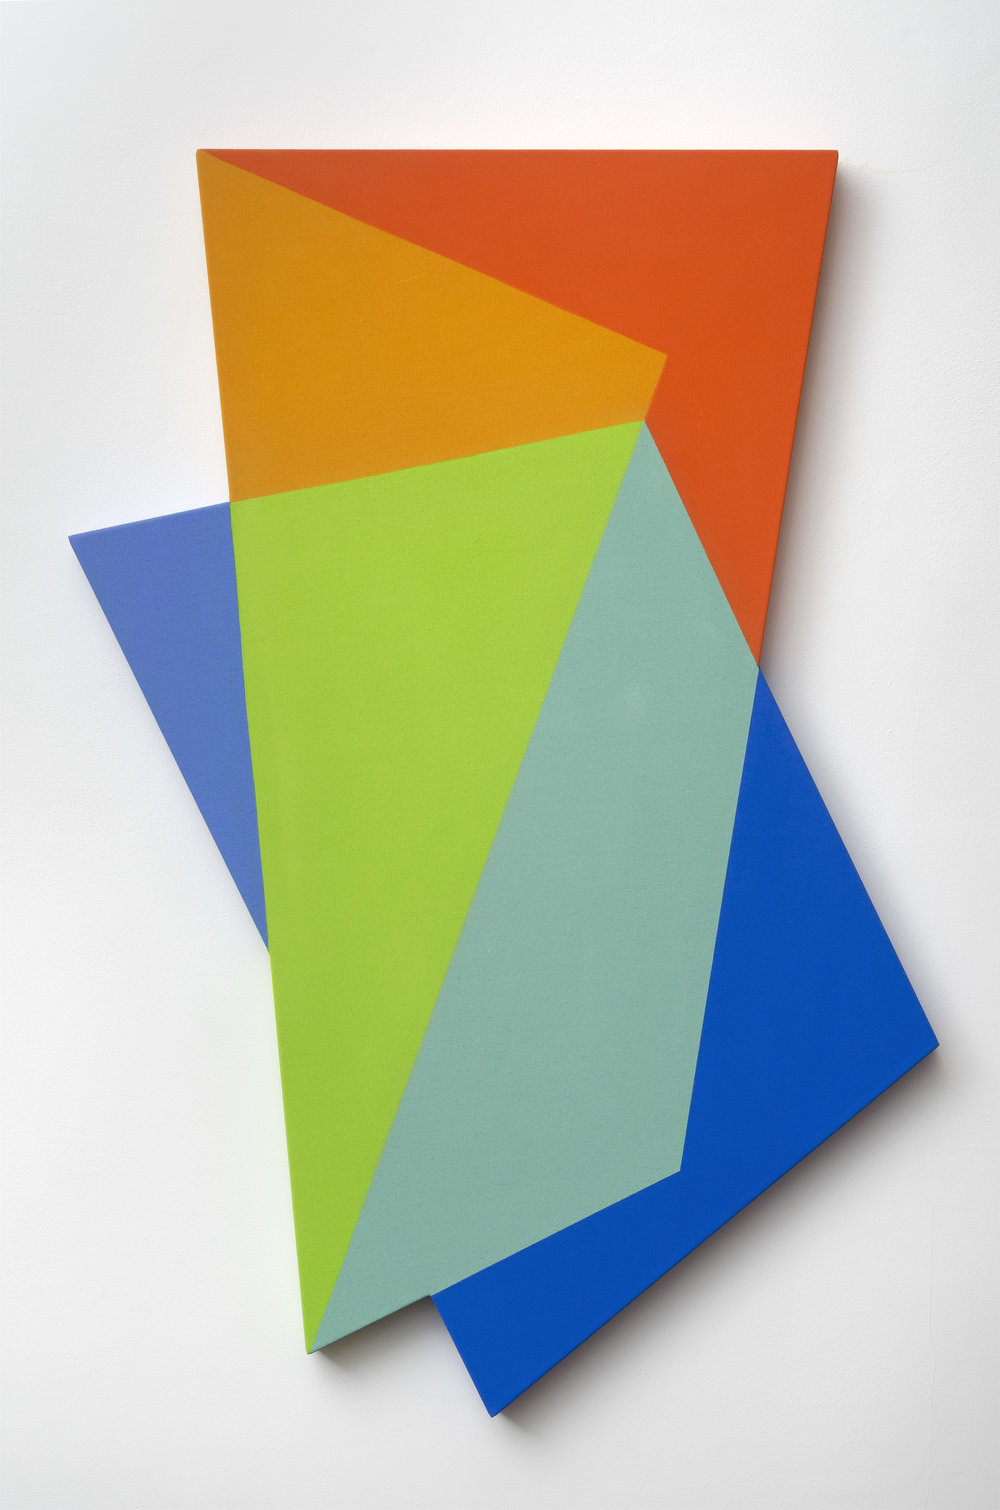 Laget, Mokha, b. 1959   Veils #4 , 2018  flashe and clay paint on shaped canvas  54 x 36 inches; 137.2 x 91.4 centimeters